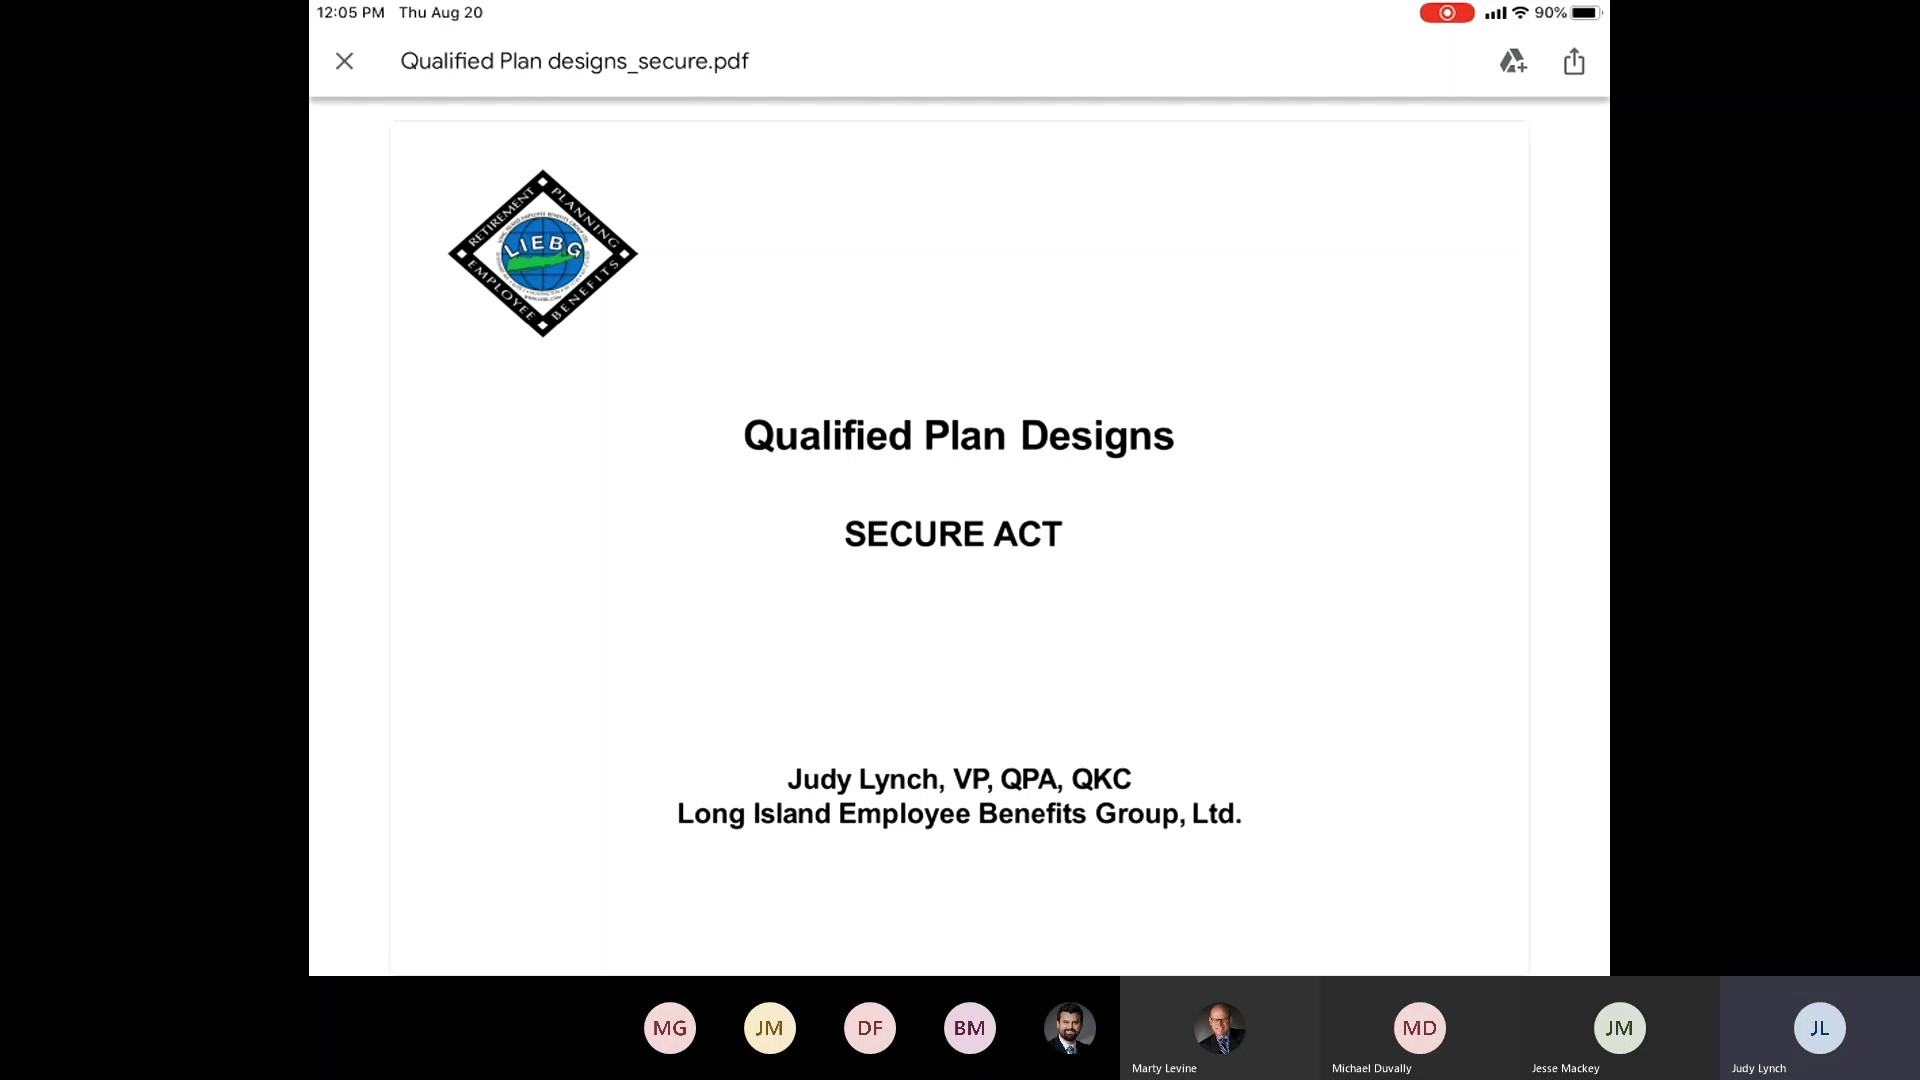 The SECURE ACT, Qualified Plan Updates, Judy Lynch VP LIEBG / 4Thought Financial Group